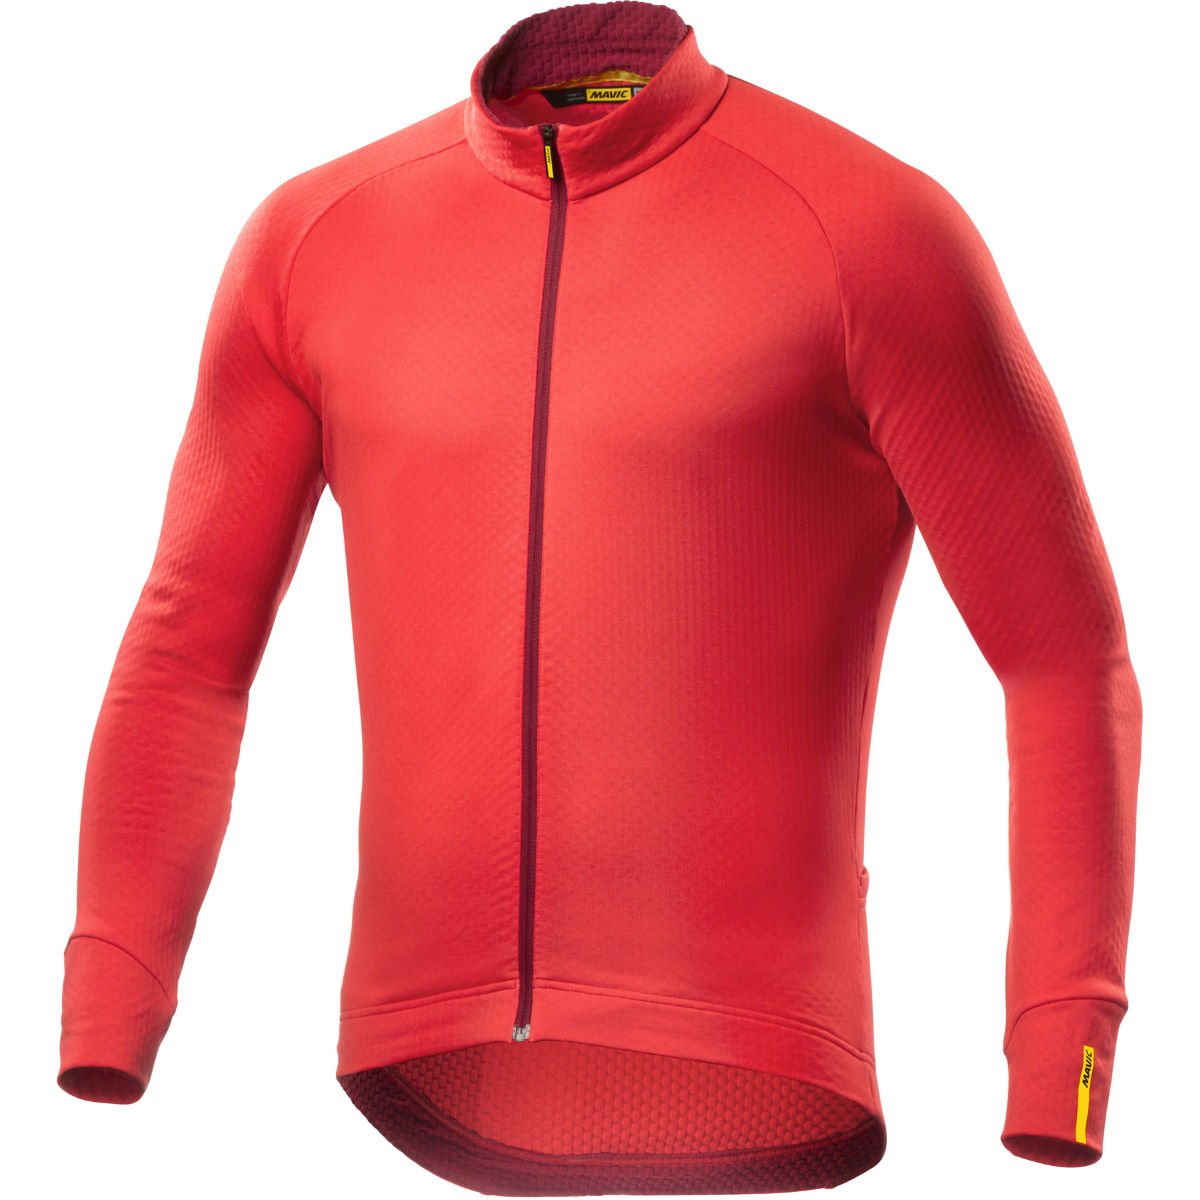 Maillot Mavic Ksyrium Pro (manches longues) - S Racing Red Maillots